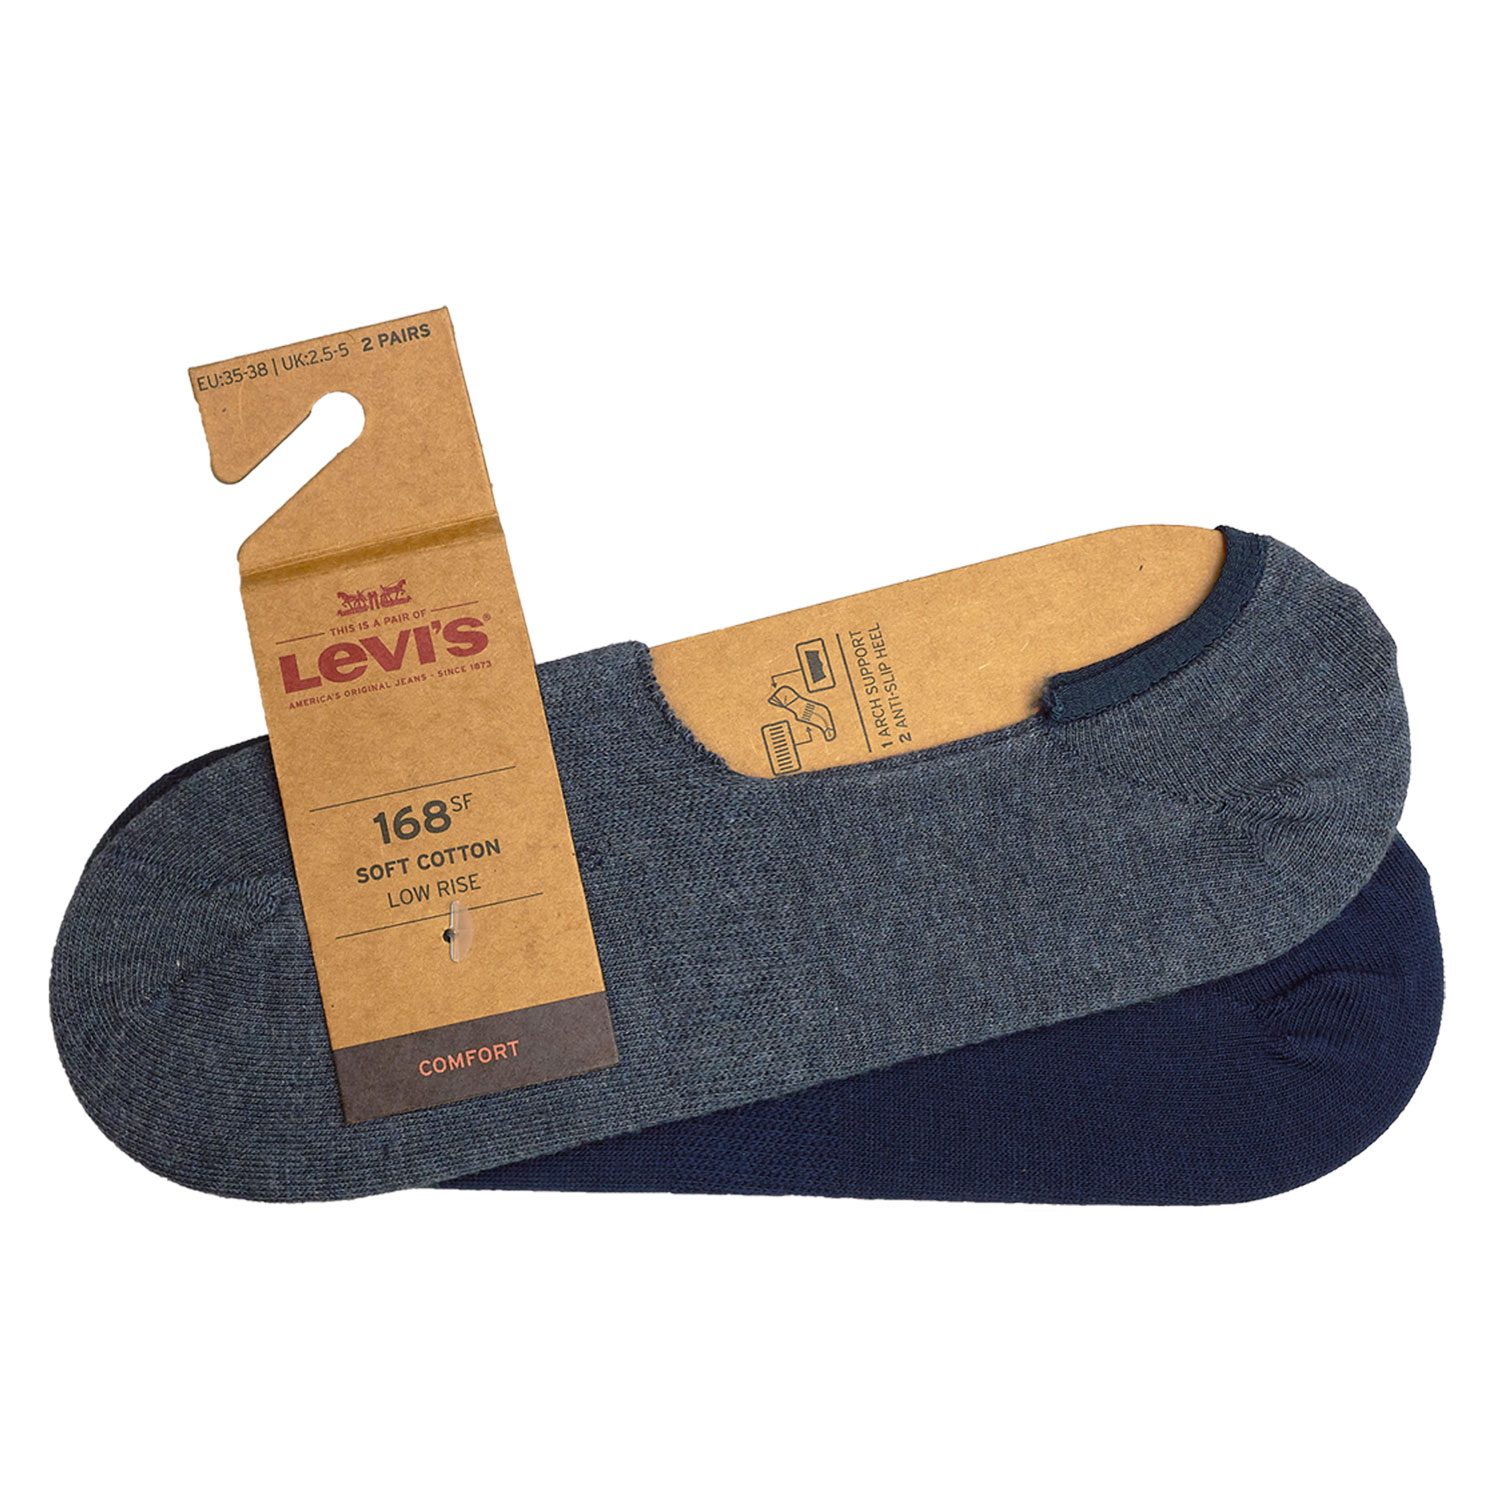 Levi's Füßlinge 8 Paar Low Rise Soft Cotton 943001001 Sneaker Footies Levis – Bild 9